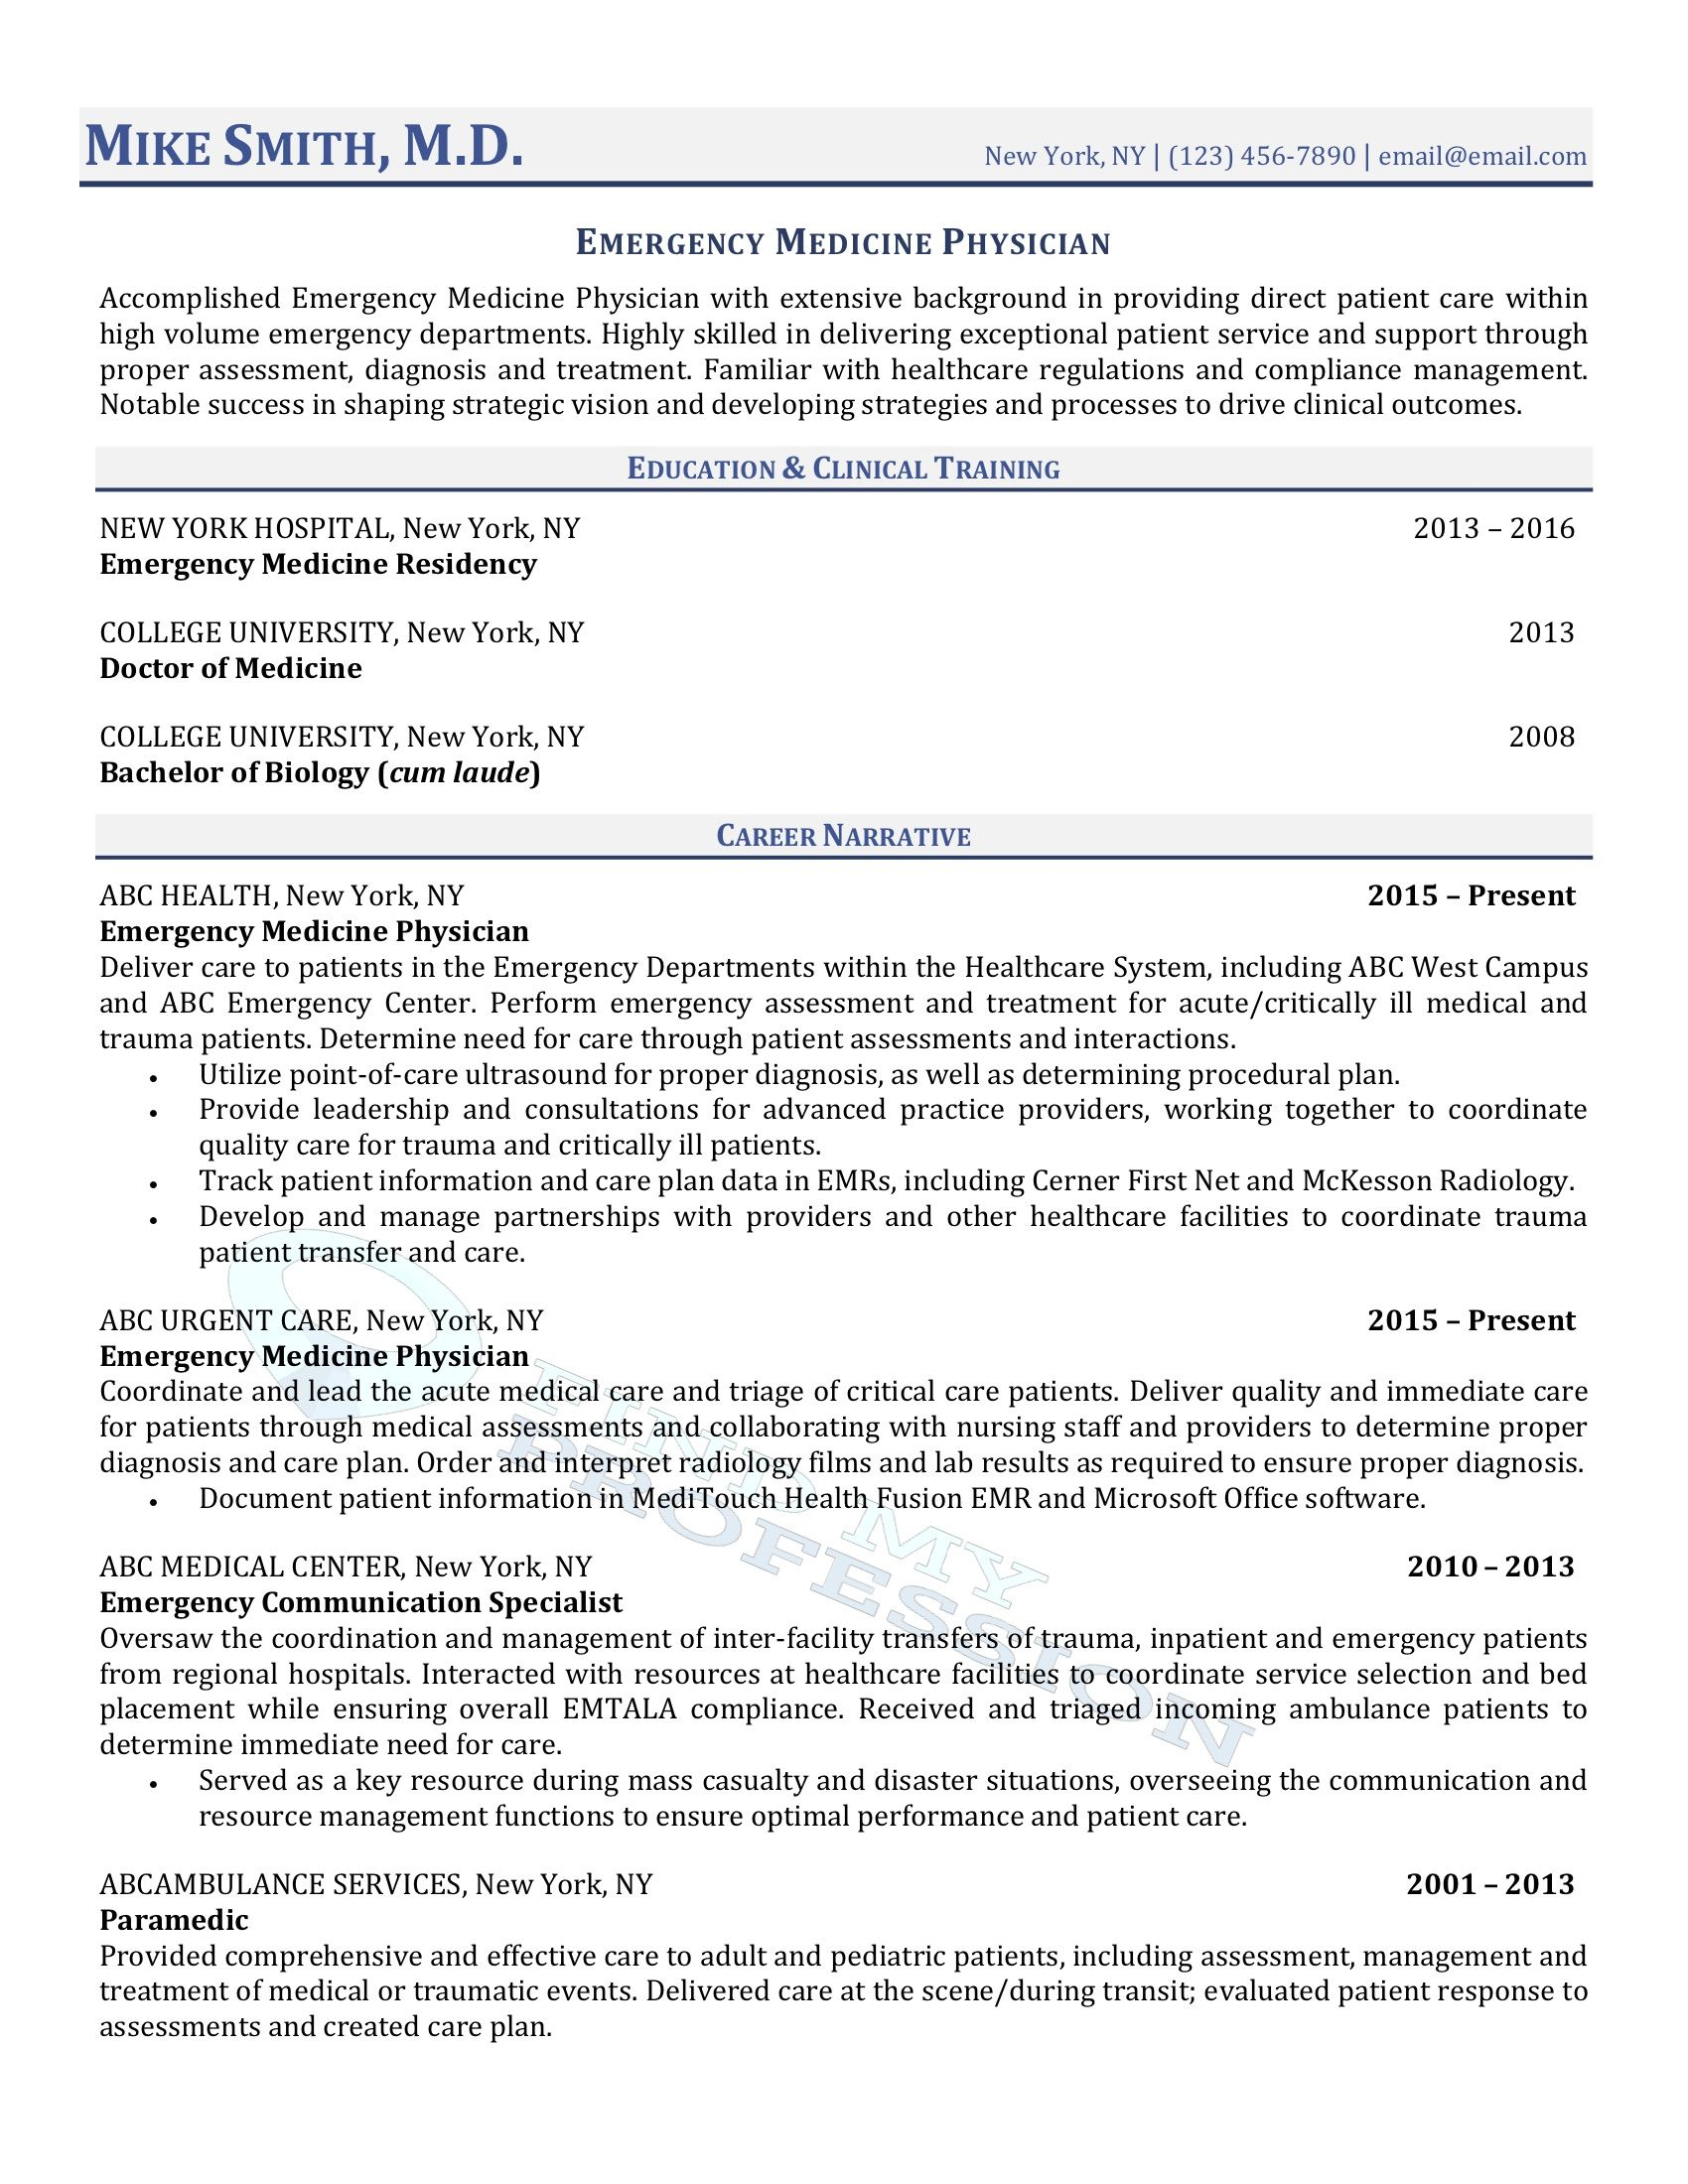 resume without objective statement sample skill set for physician run through ats Resume Physician Resume Writer